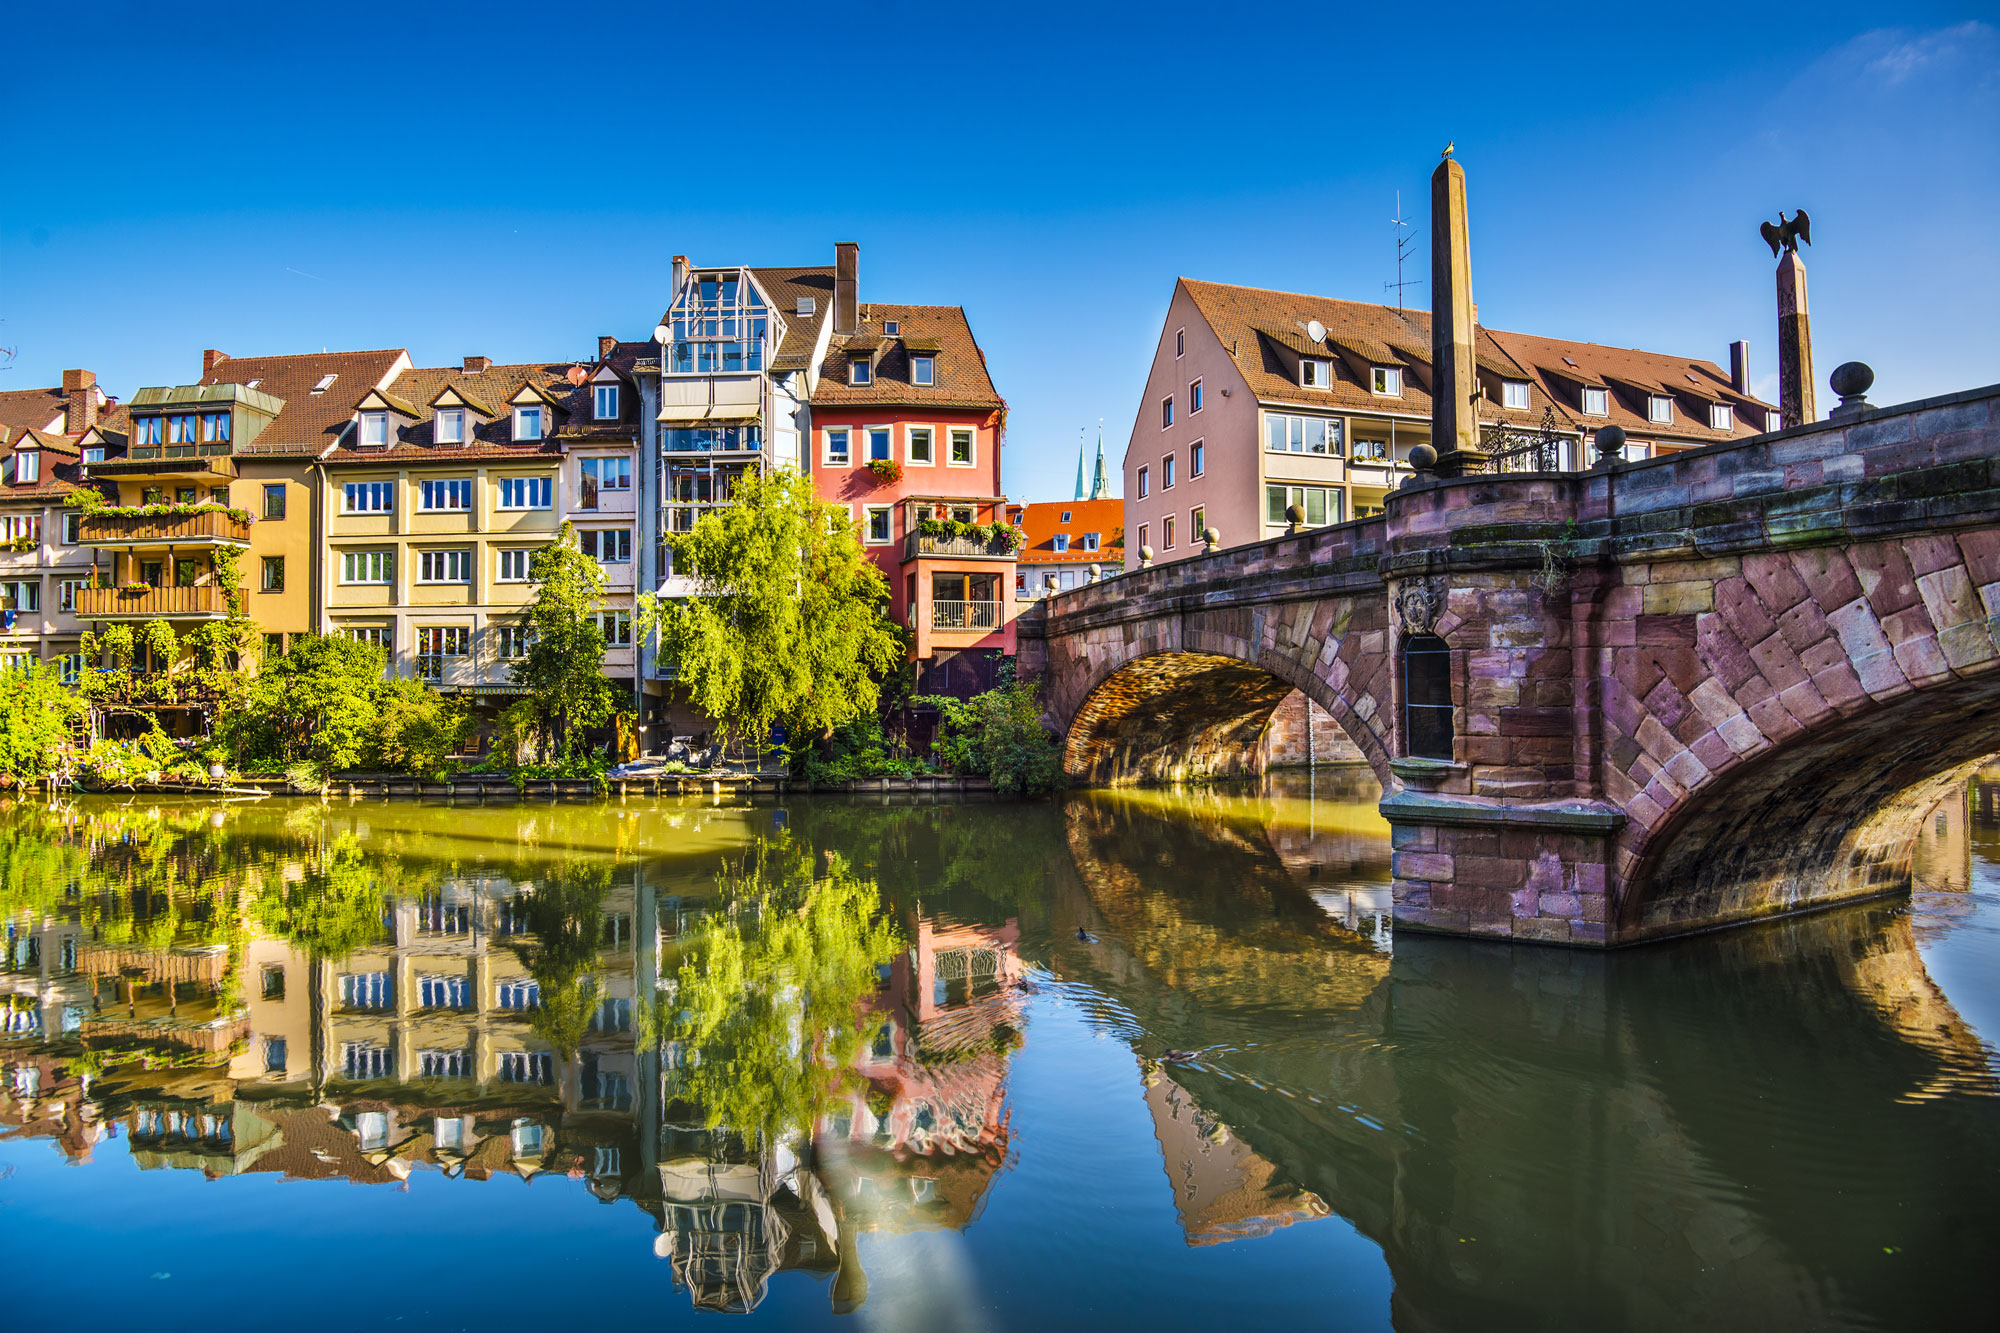 Nuremberg, Germany Old City at Pegnitz River